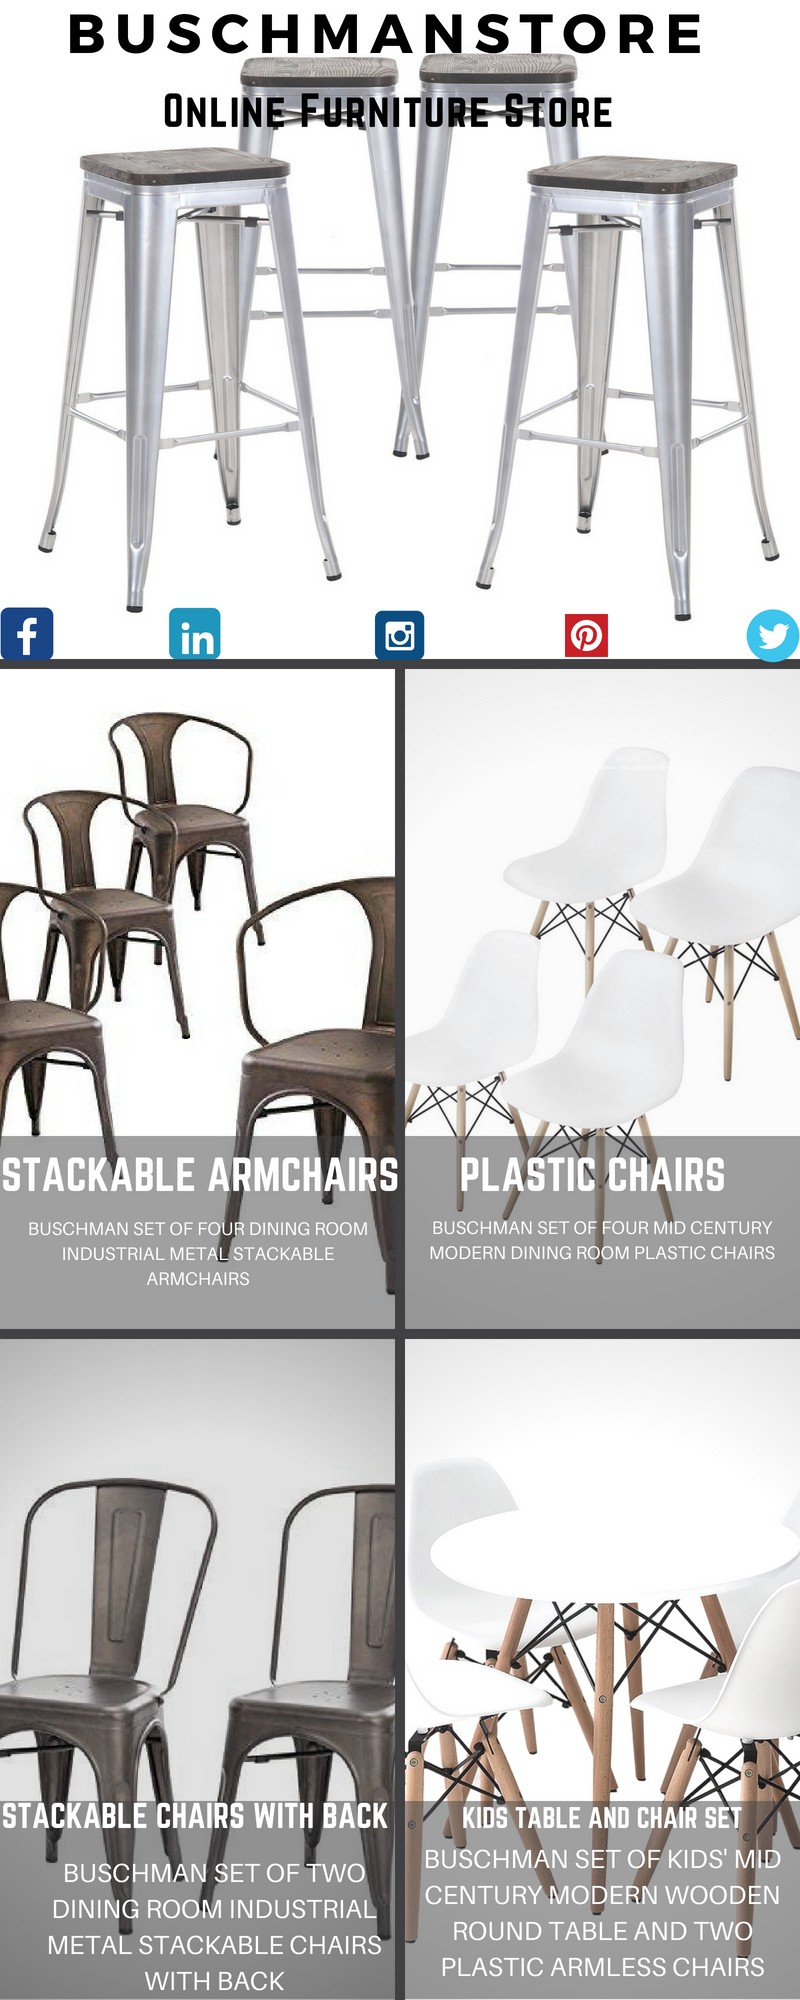 Wondrous Shop Online Kids Table And Chair Set At The Best Prices Alphanode Cool Chair Designs And Ideas Alphanodeonline